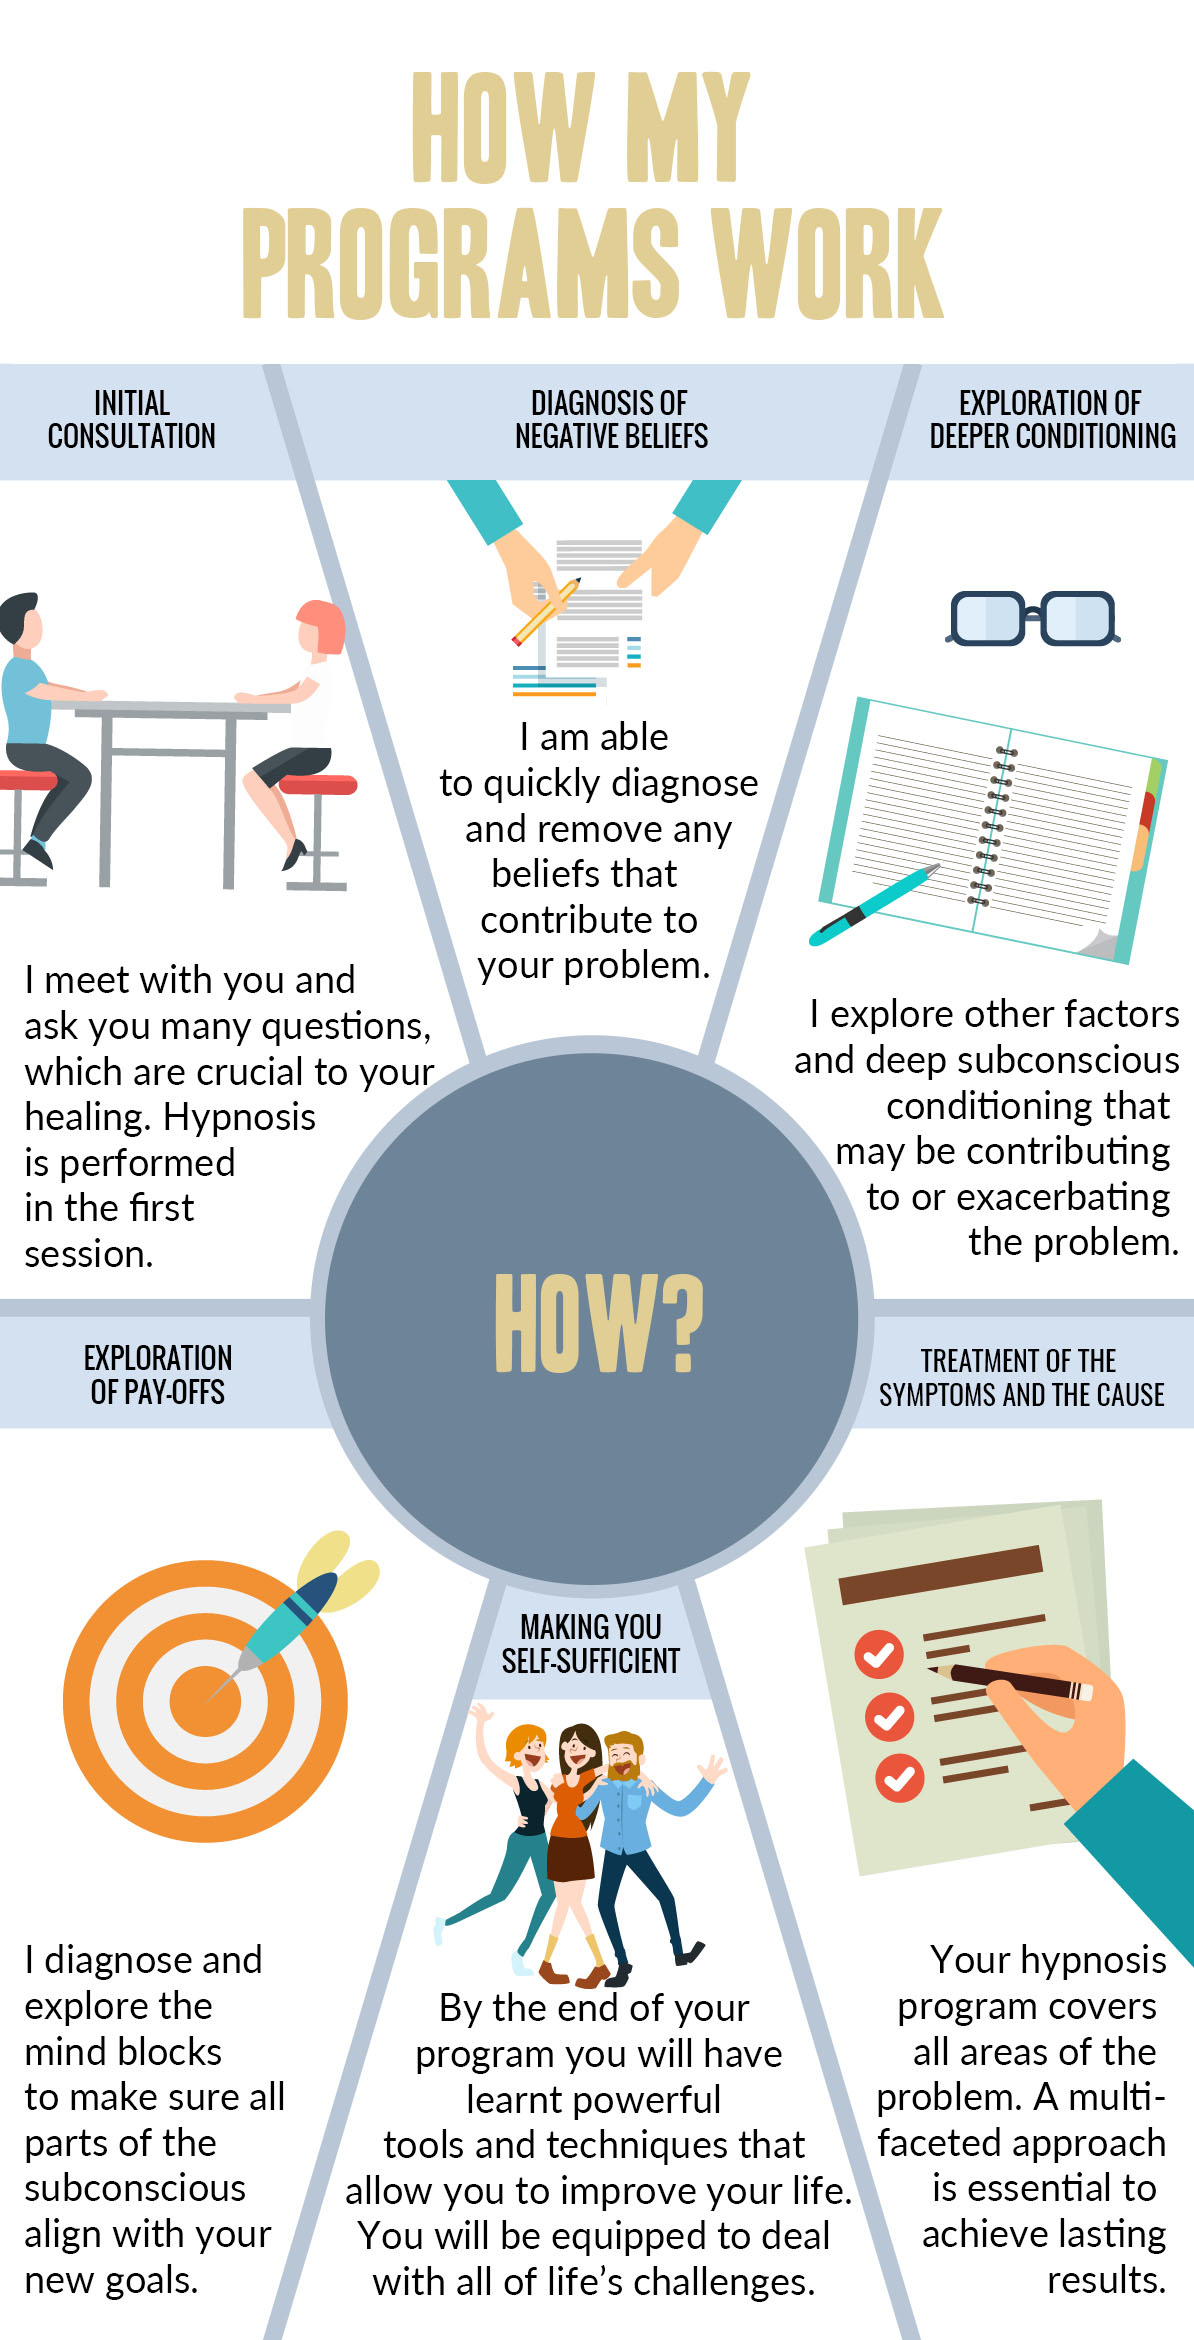 hypnosis methodology from initial consultation to successful outcome- an infographic from a professional hypnotherapist